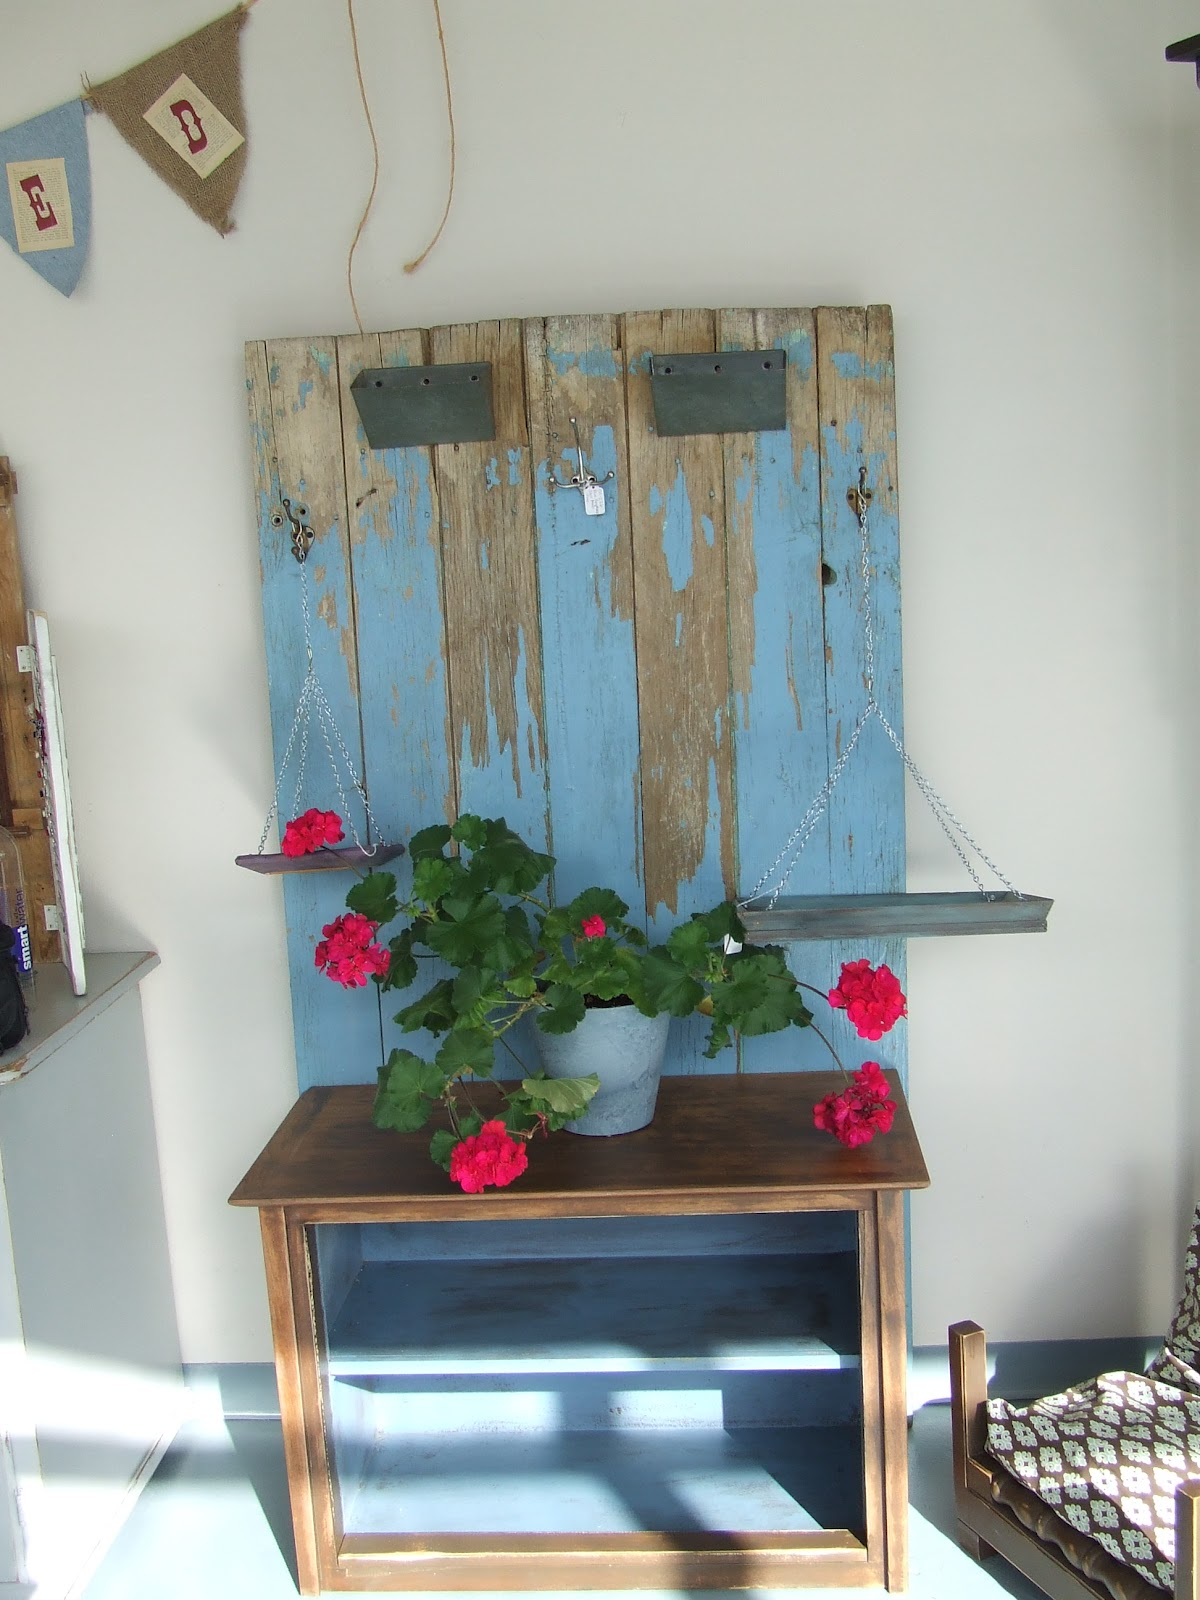 Somethin 39 salvaged uses for old doors windows and shutters for Recycled windows and doors